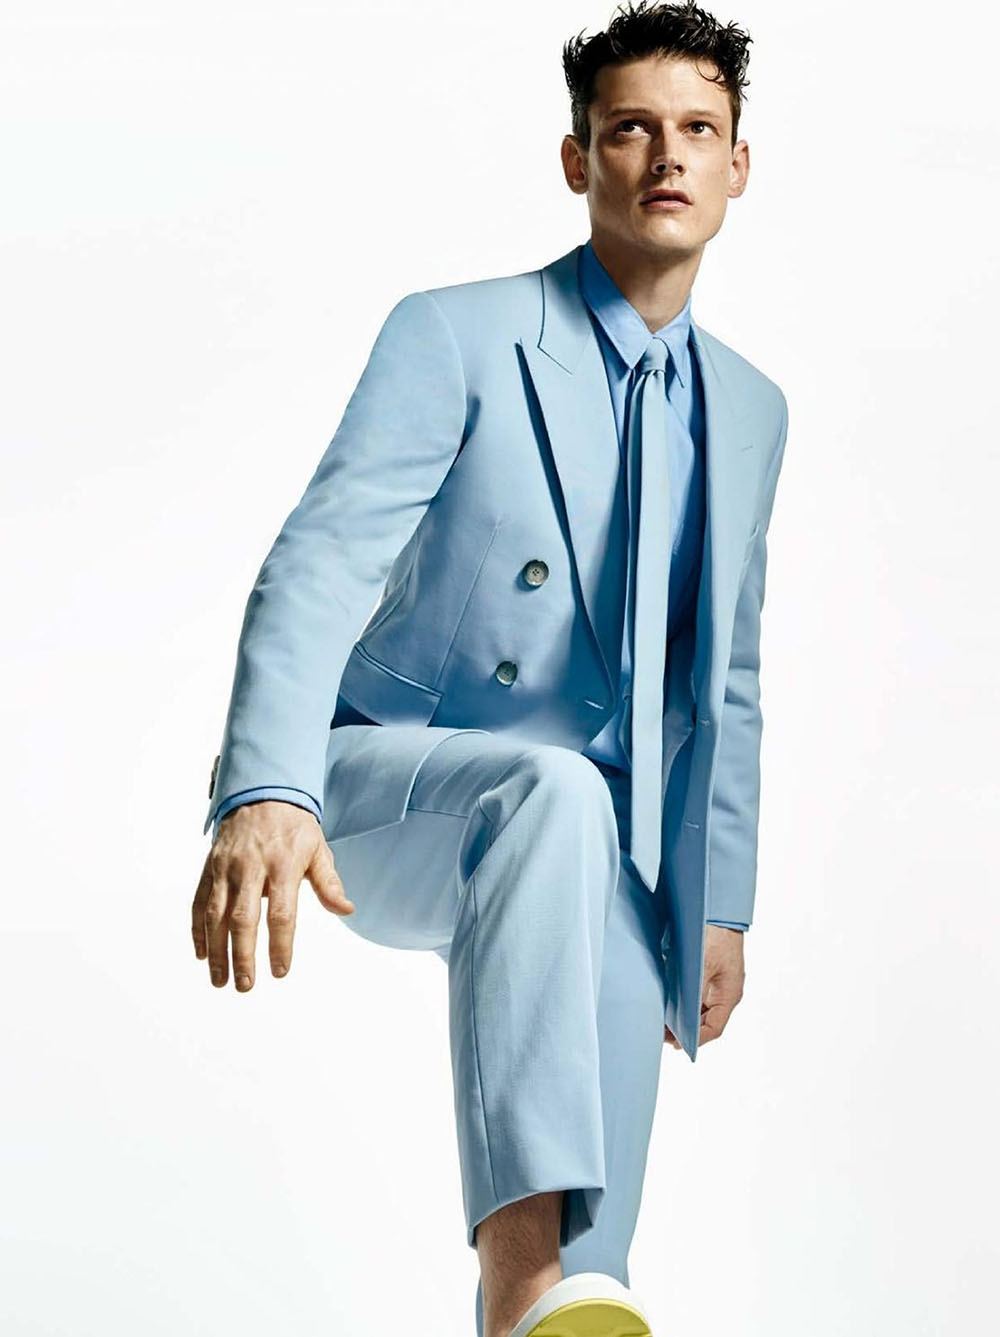 Adam Butcher by Jean-Claude Lussier for Dressed to Kill Men Spring/Summer 2020